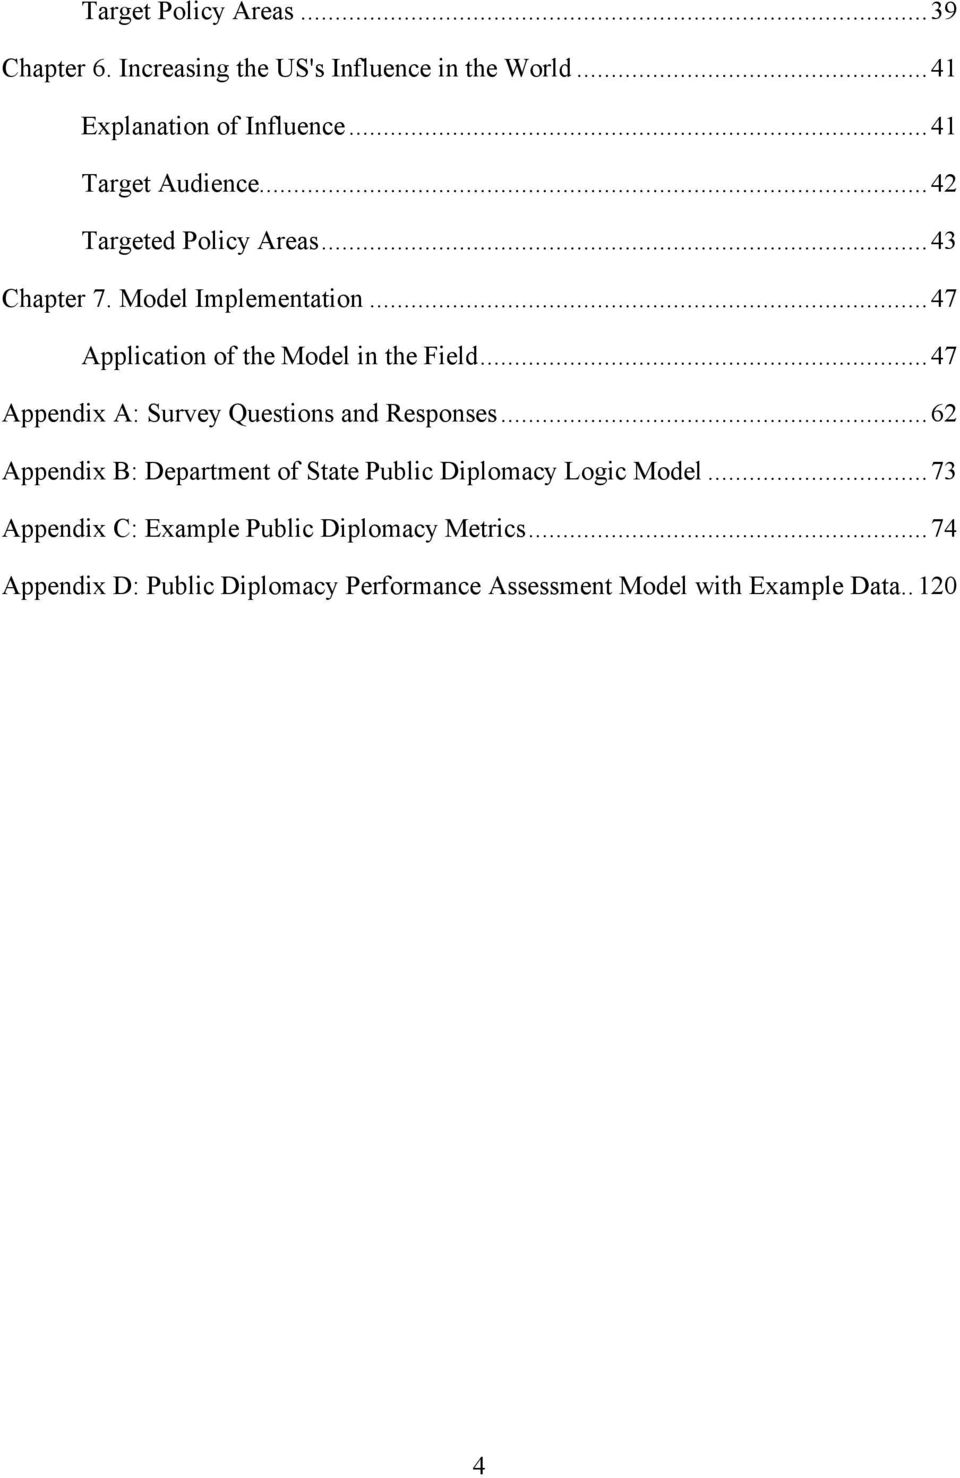 ..47 Application of the Model in the Field...47 Appendix A: Survey Questions and Responses.